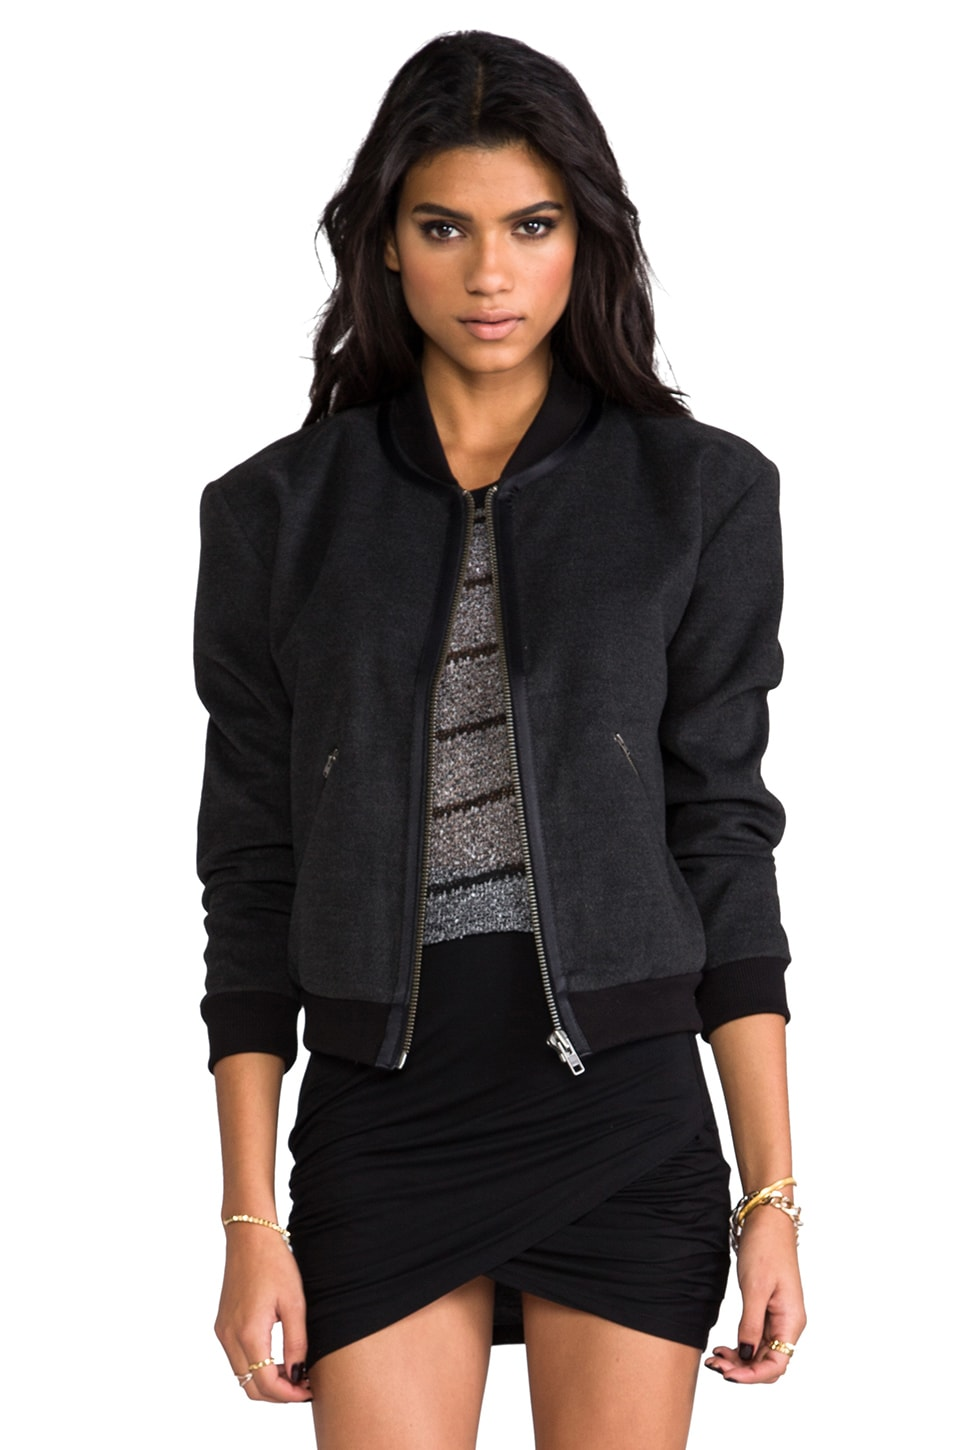 ANINE BING X Sincerely Jules Exclusive Bomber Jacket in Anthracite